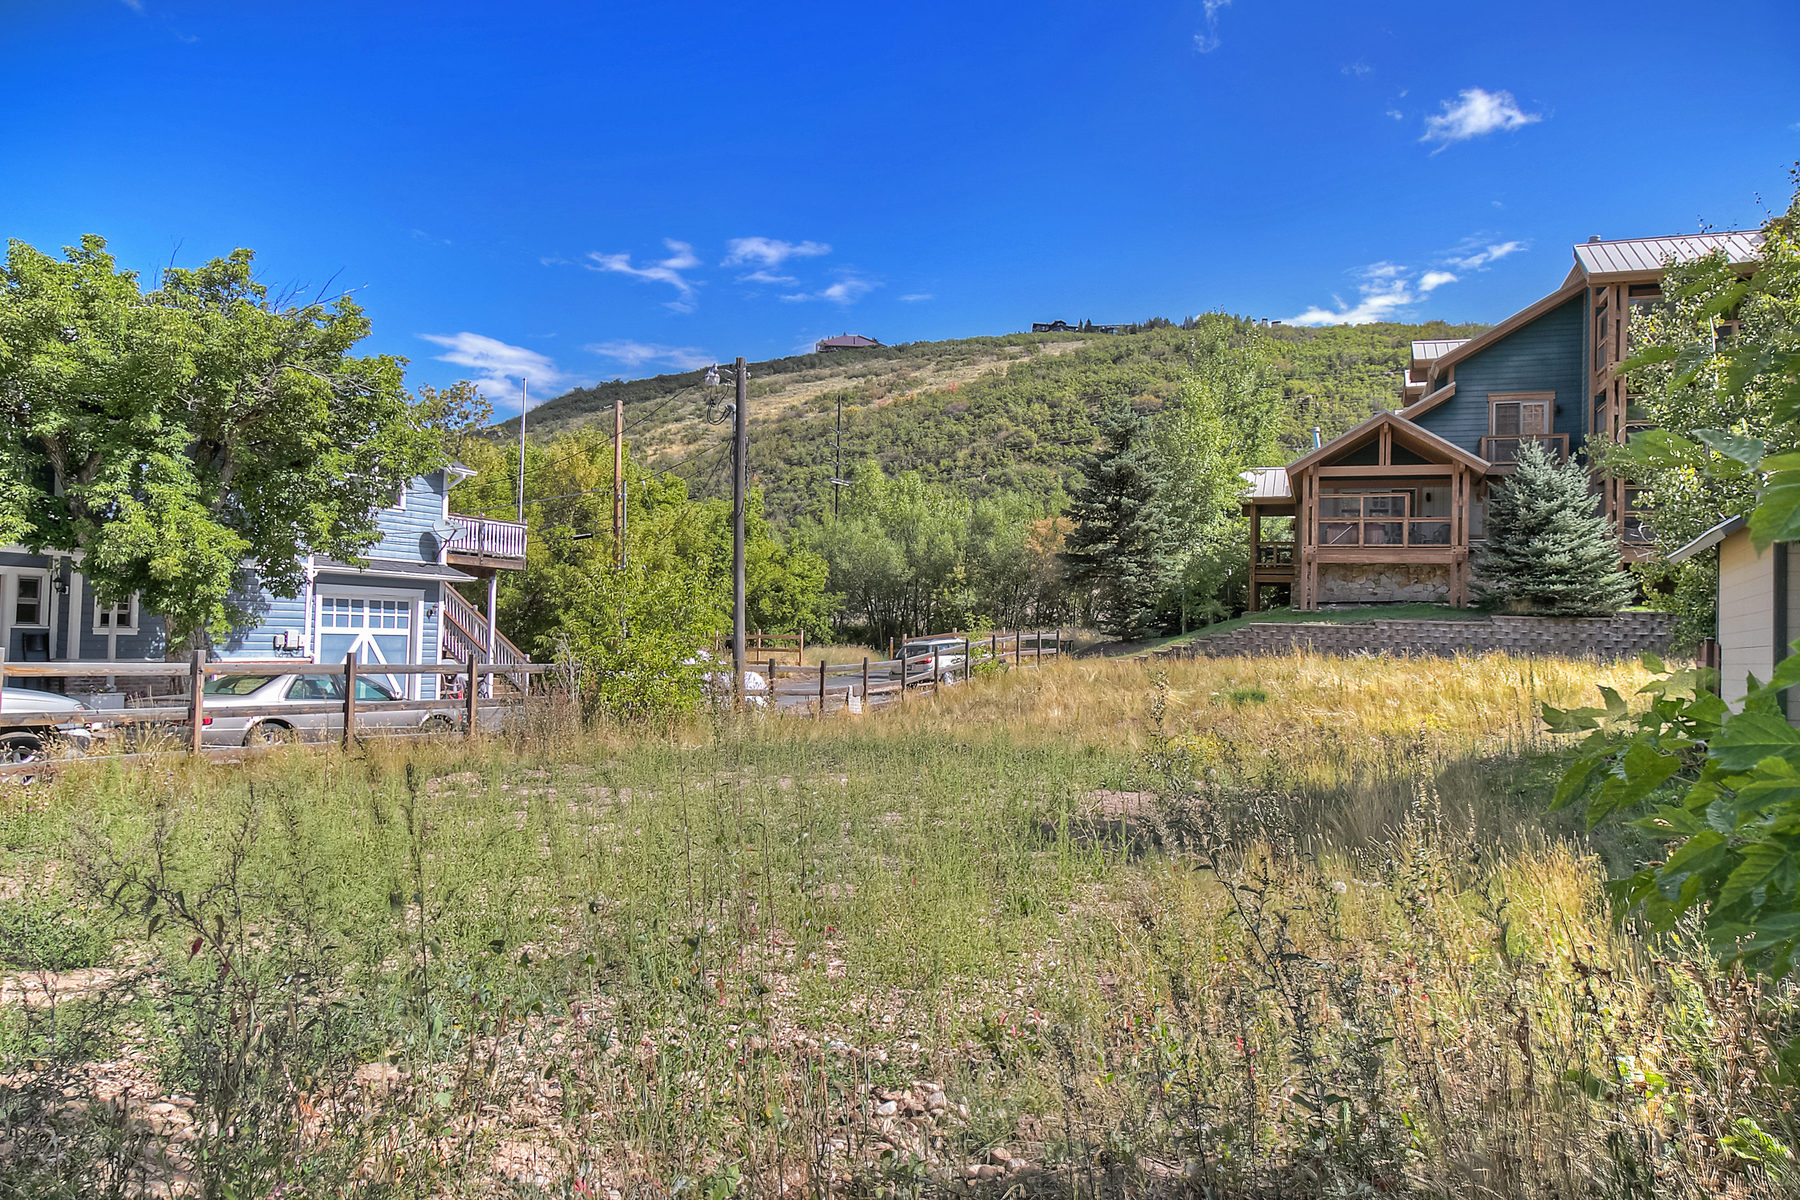 أراضي للـ Sale في 3 Lot Development Opportunity 1064 Park Ave Lot 15 & Lot 16, Park City, Utah, 84060 United States